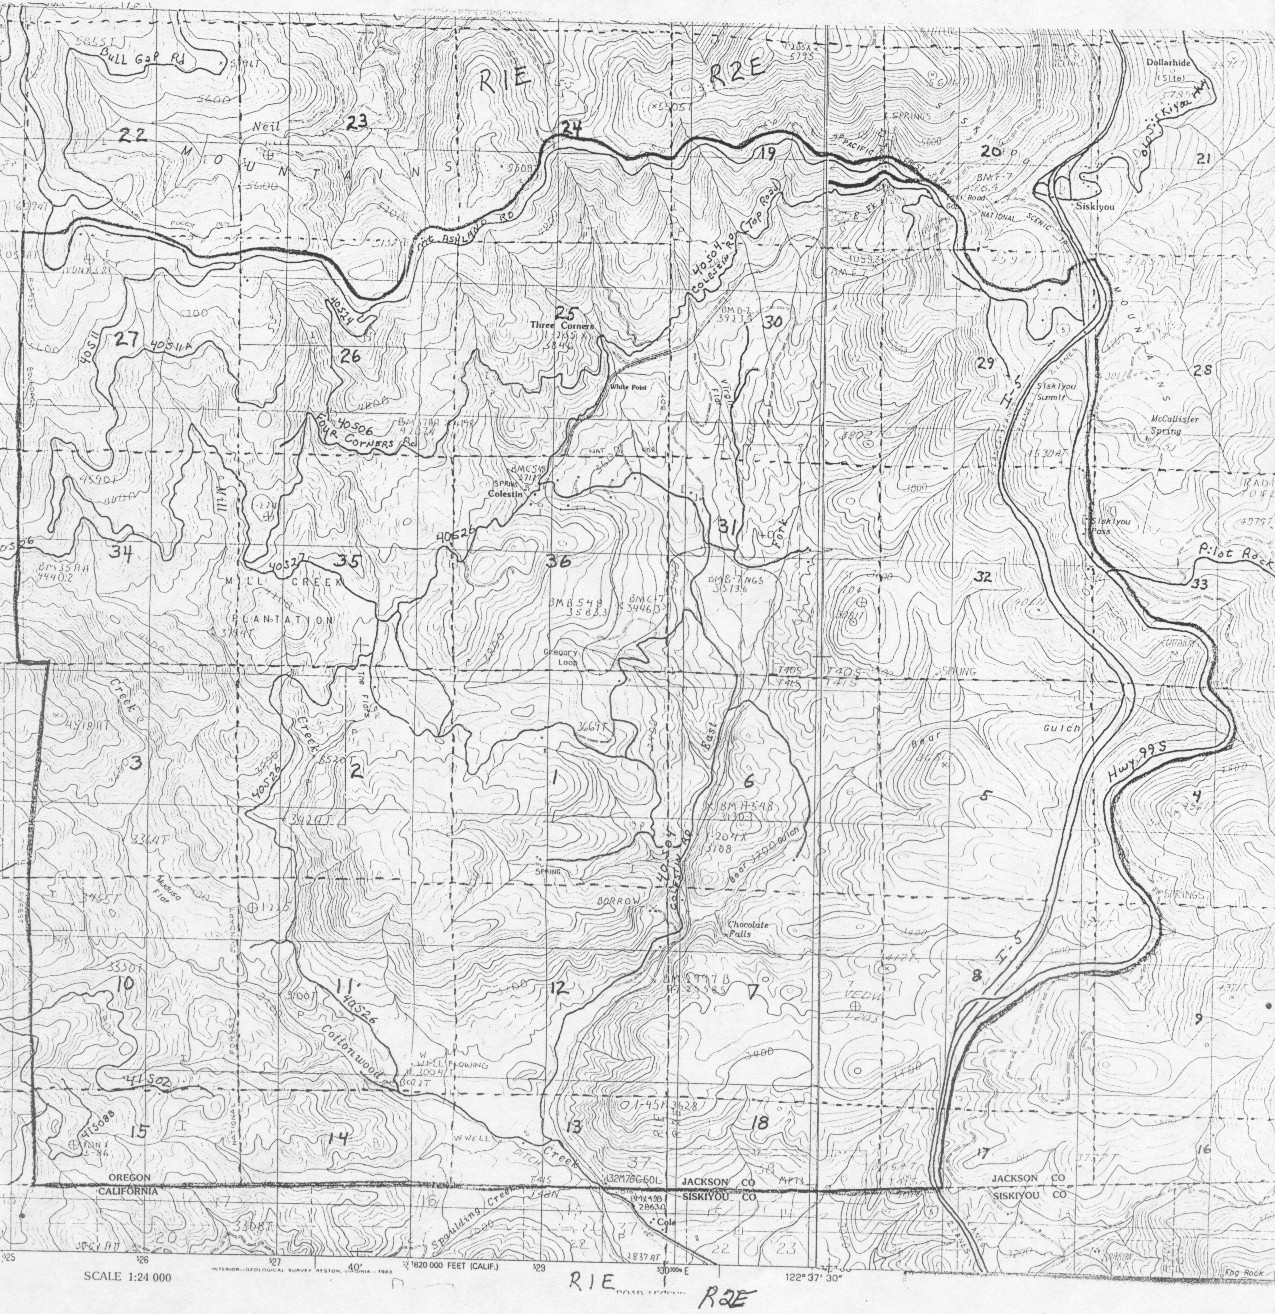 Large topographic map of the District